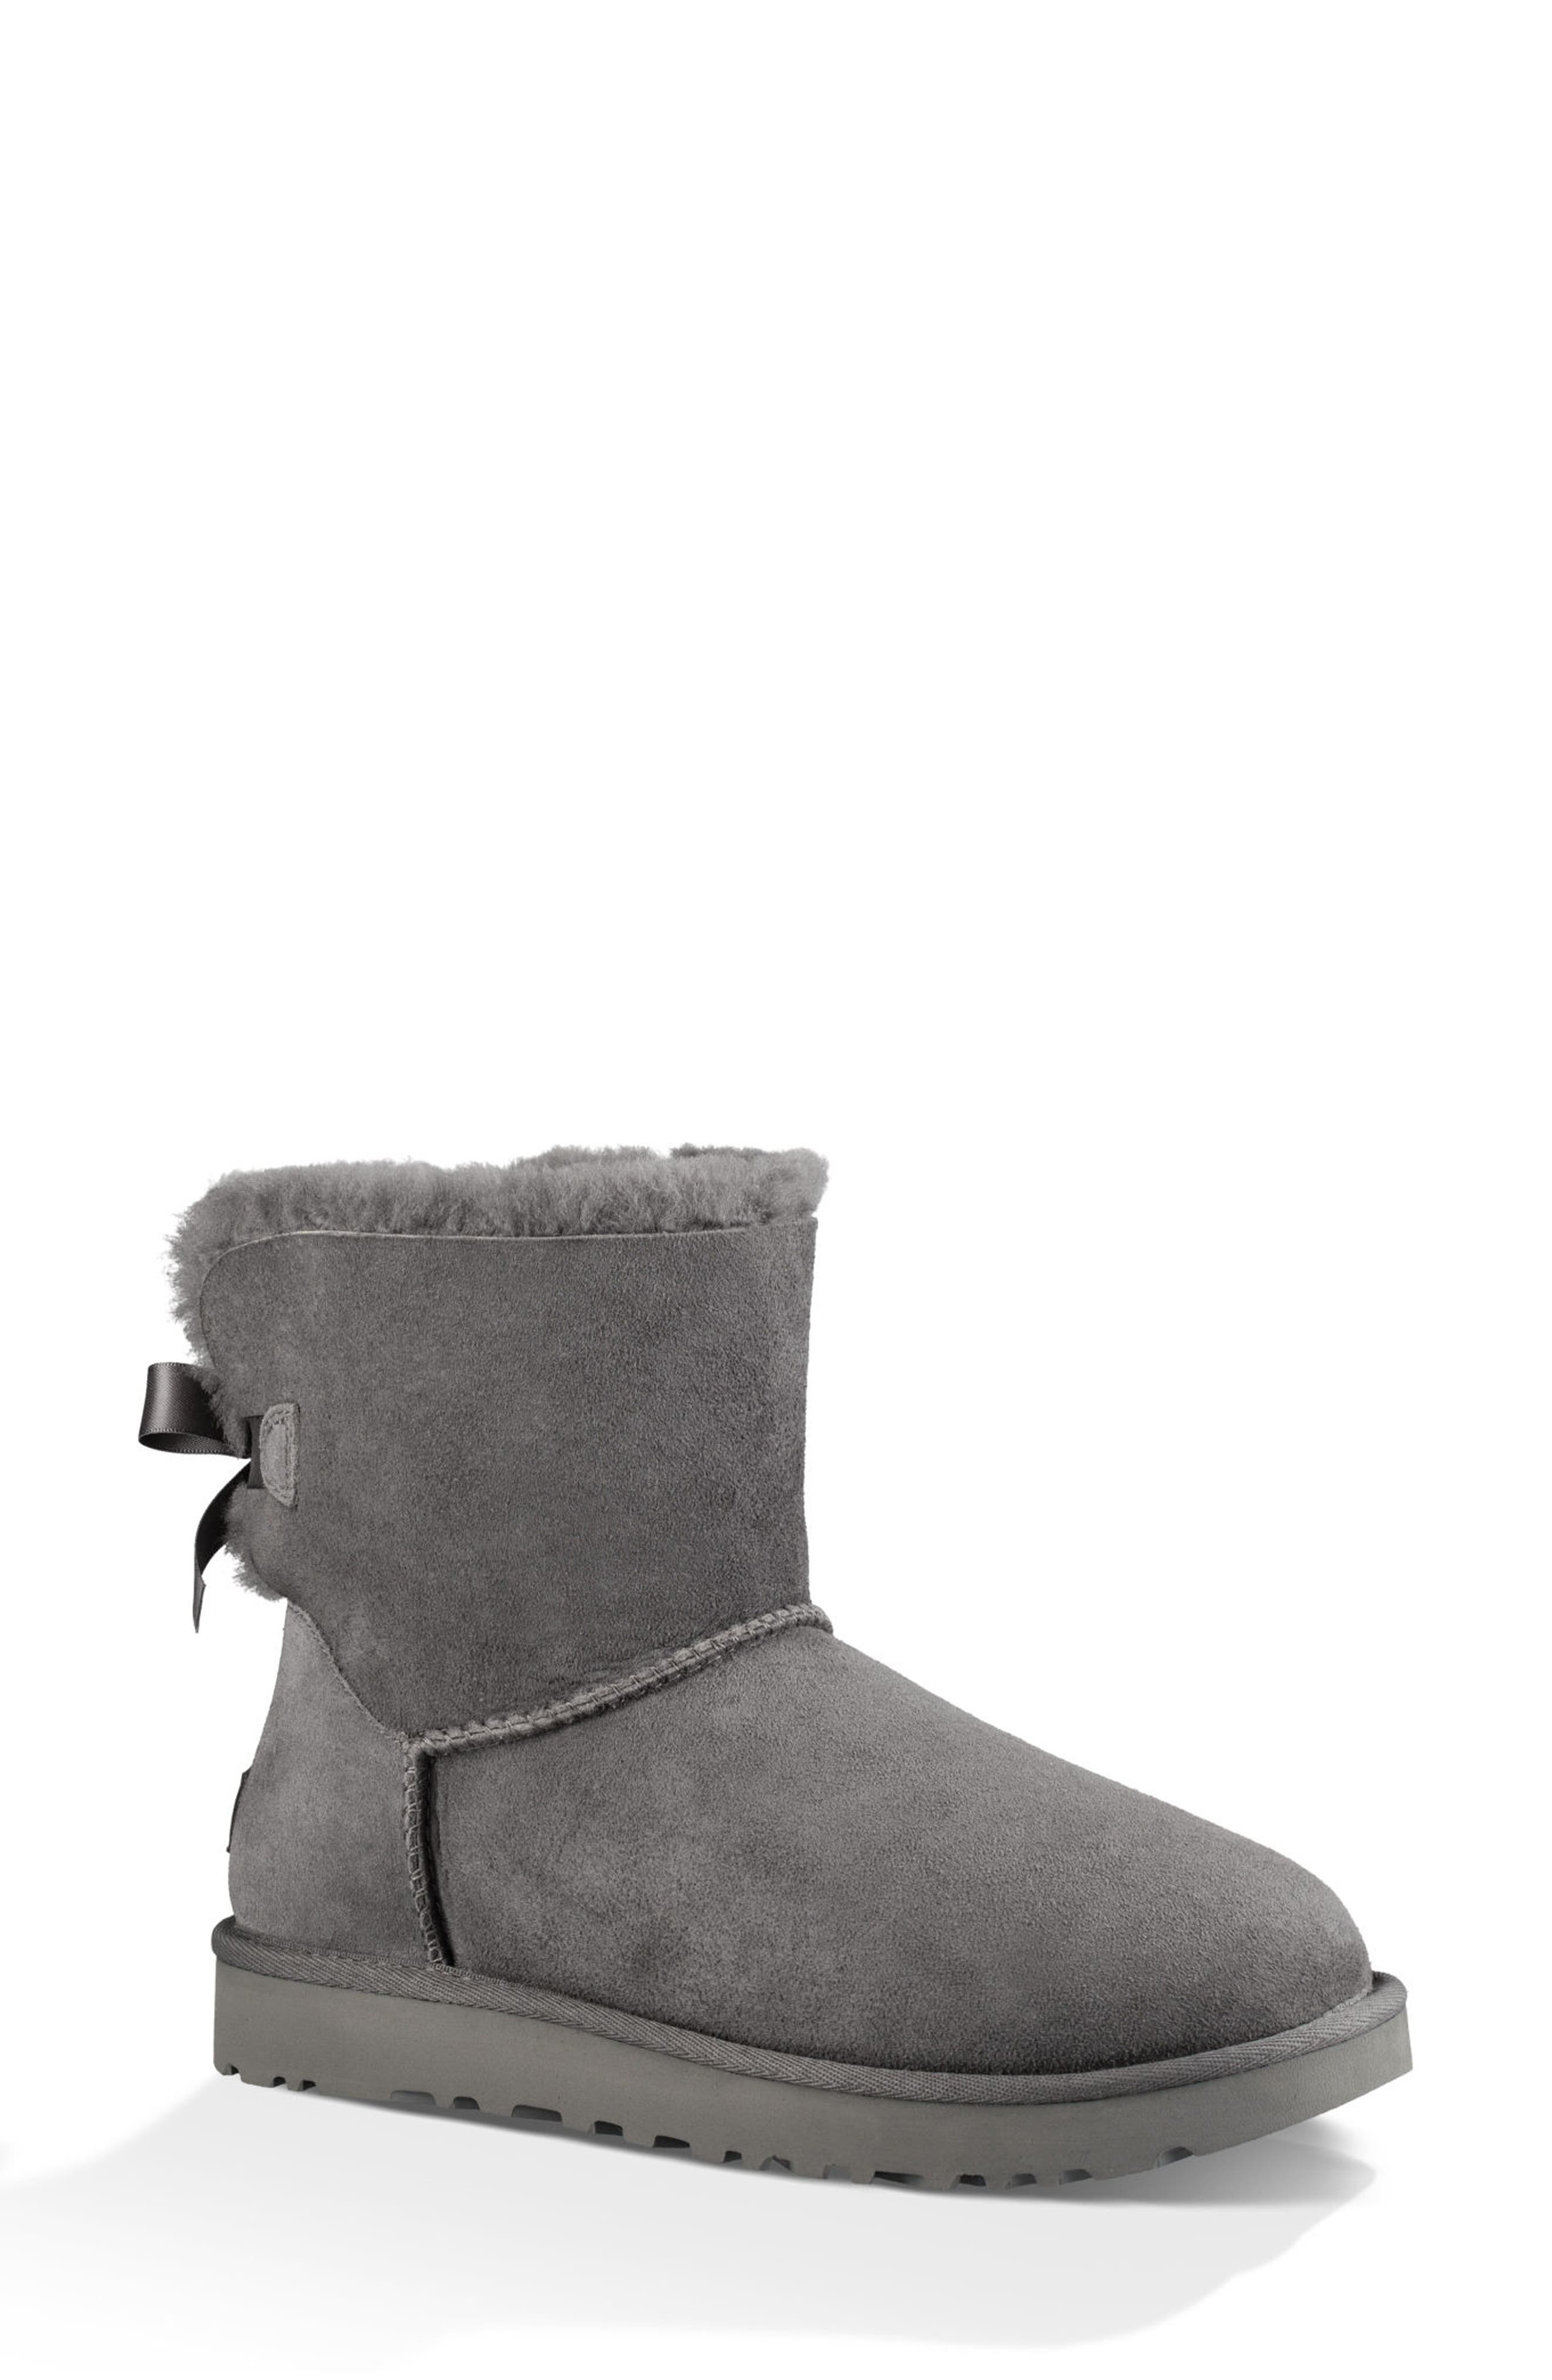 Mini Bailey Bow II Genuine Shearling Bootie,                             Main thumbnail 1, color,                             GREY SUEDE